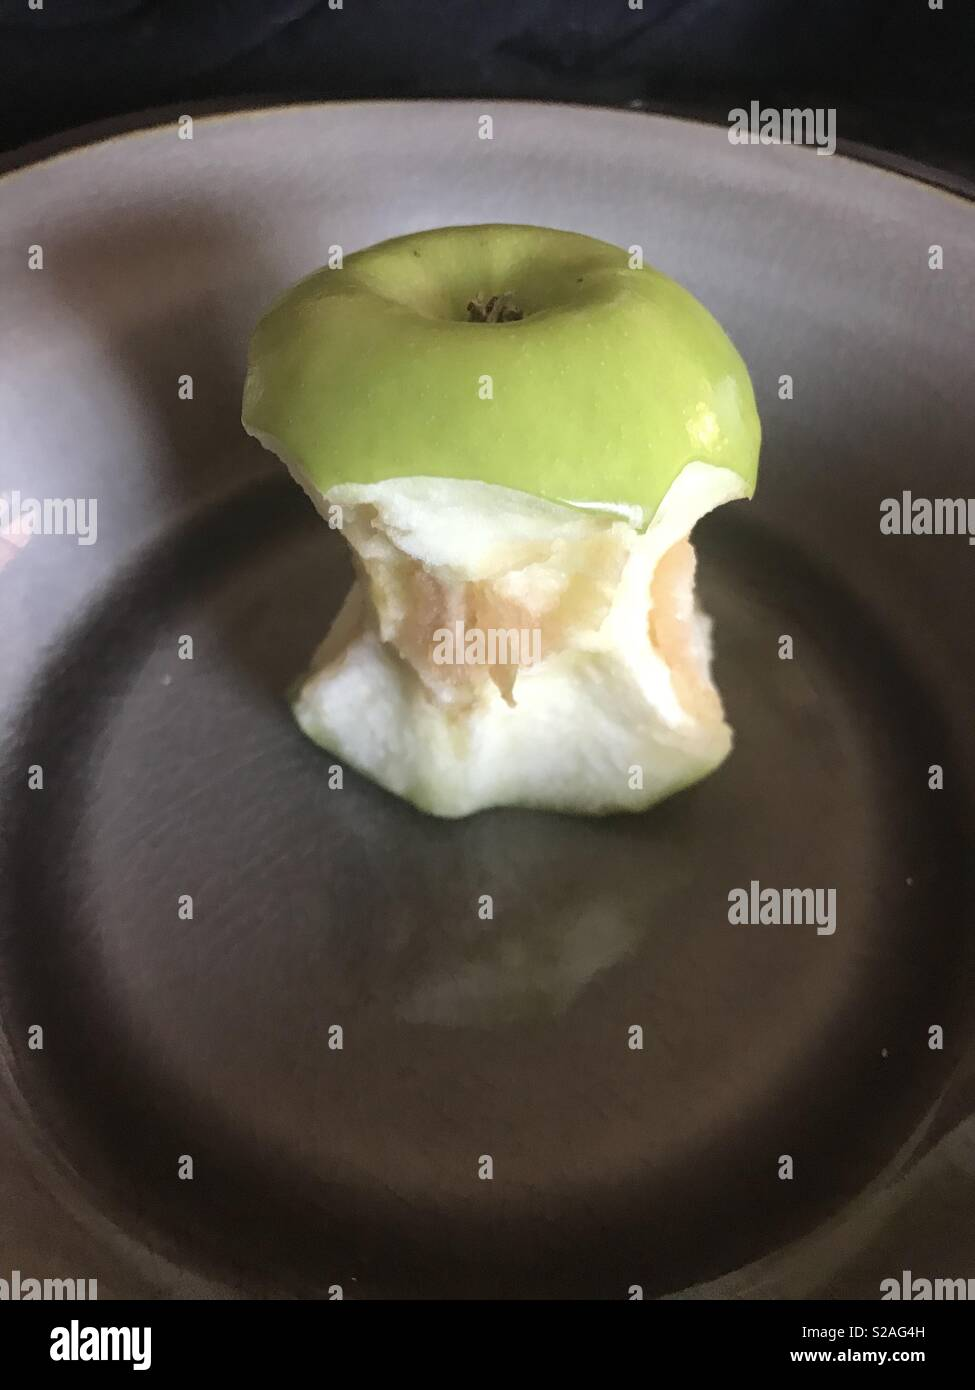 Picture of an old rotten Apple core sitting in s bowl - Stock Image